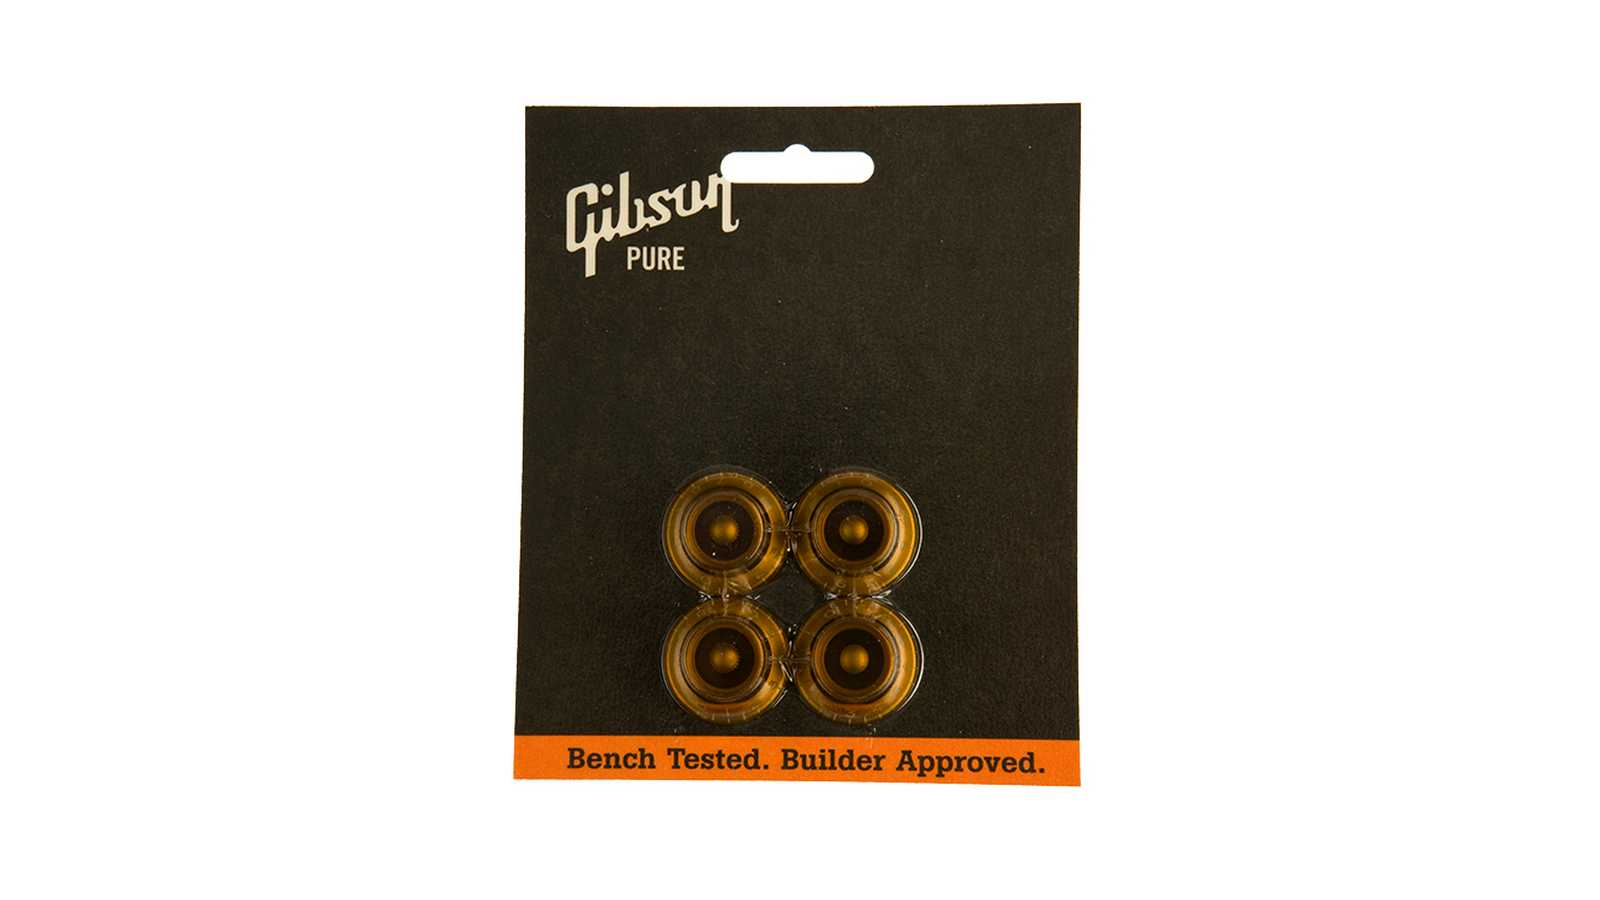 Gibson Top Hat Knobs (Vintage Amber) 4 Stck. Poti Knöpfe